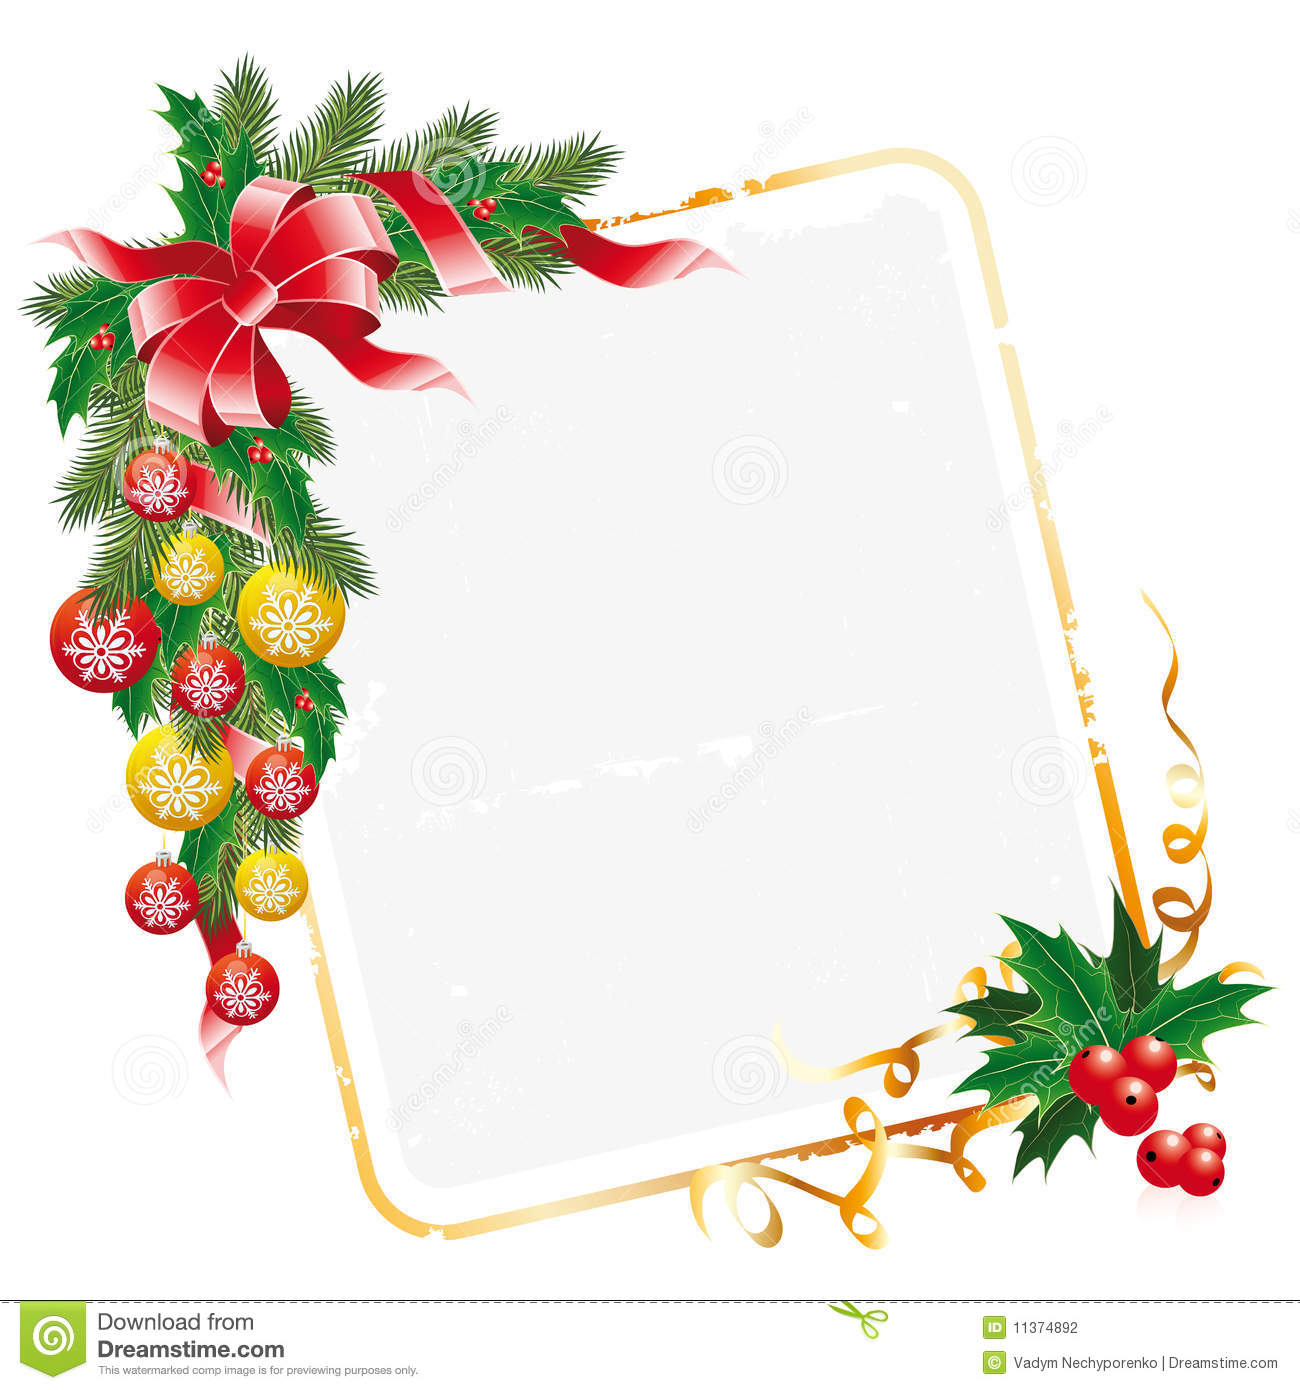 christmas letter decoration - Christmas Letter Decorations